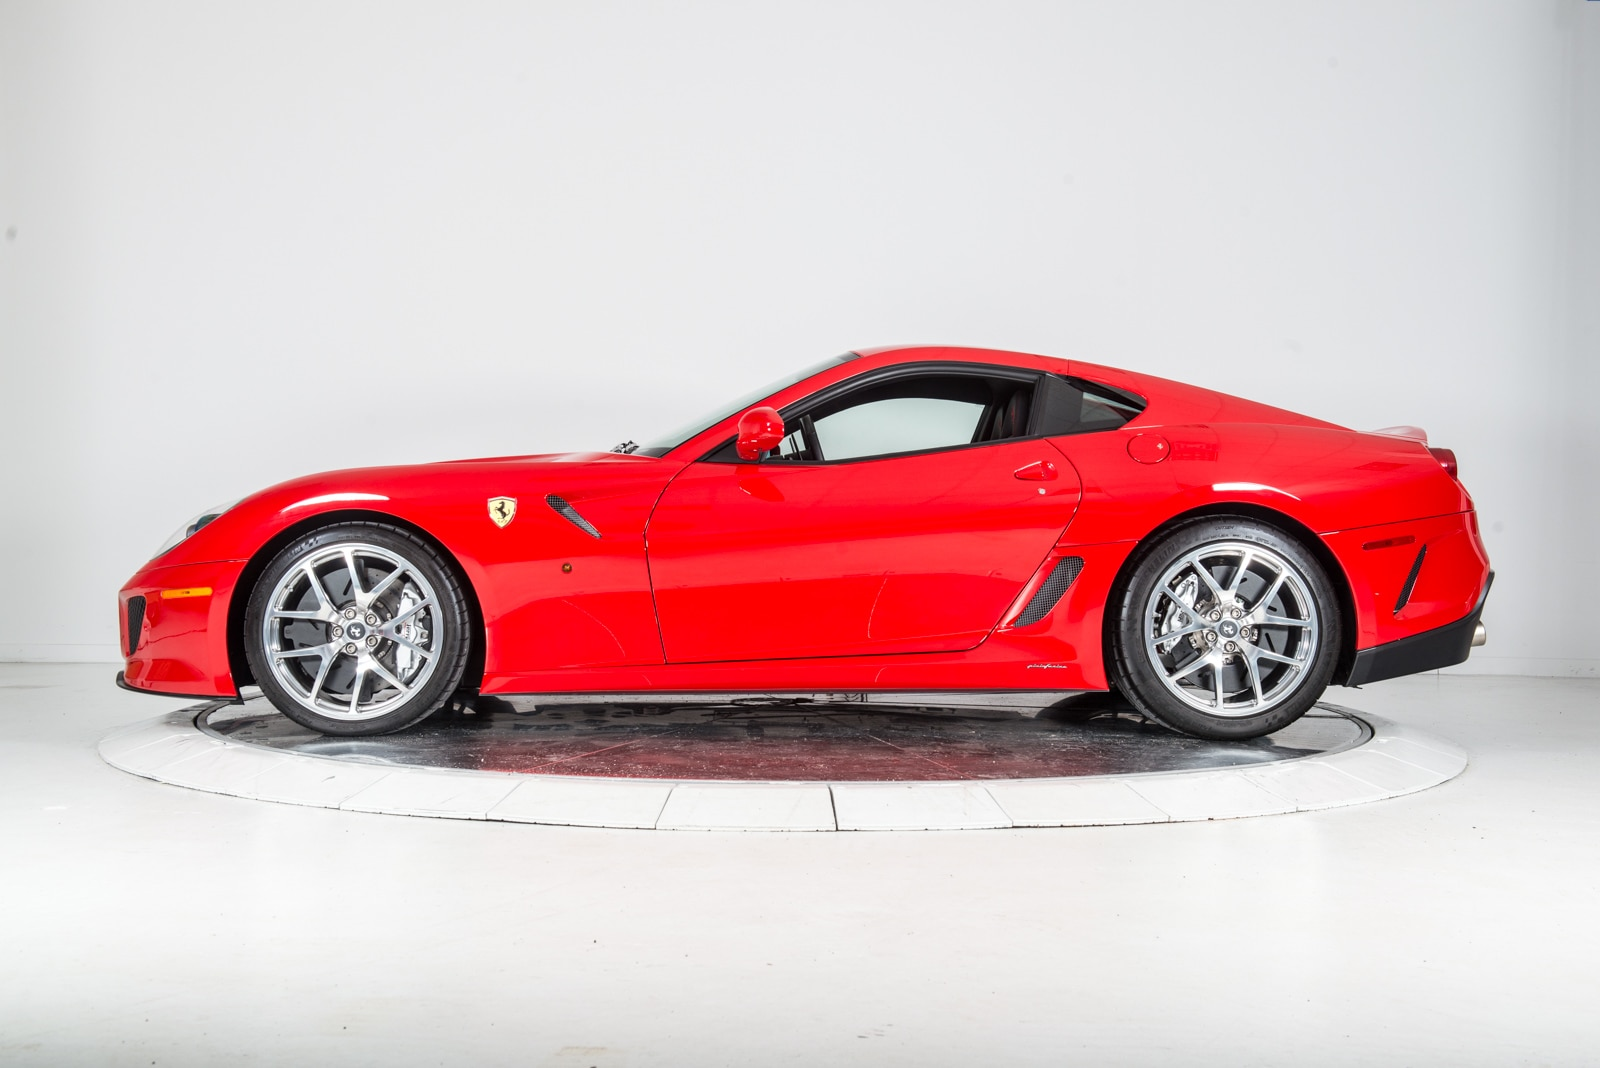 used 2011 ferrari 599 gto for sale plainview near long island ny vin zff70rca4b0180532. Black Bedroom Furniture Sets. Home Design Ideas